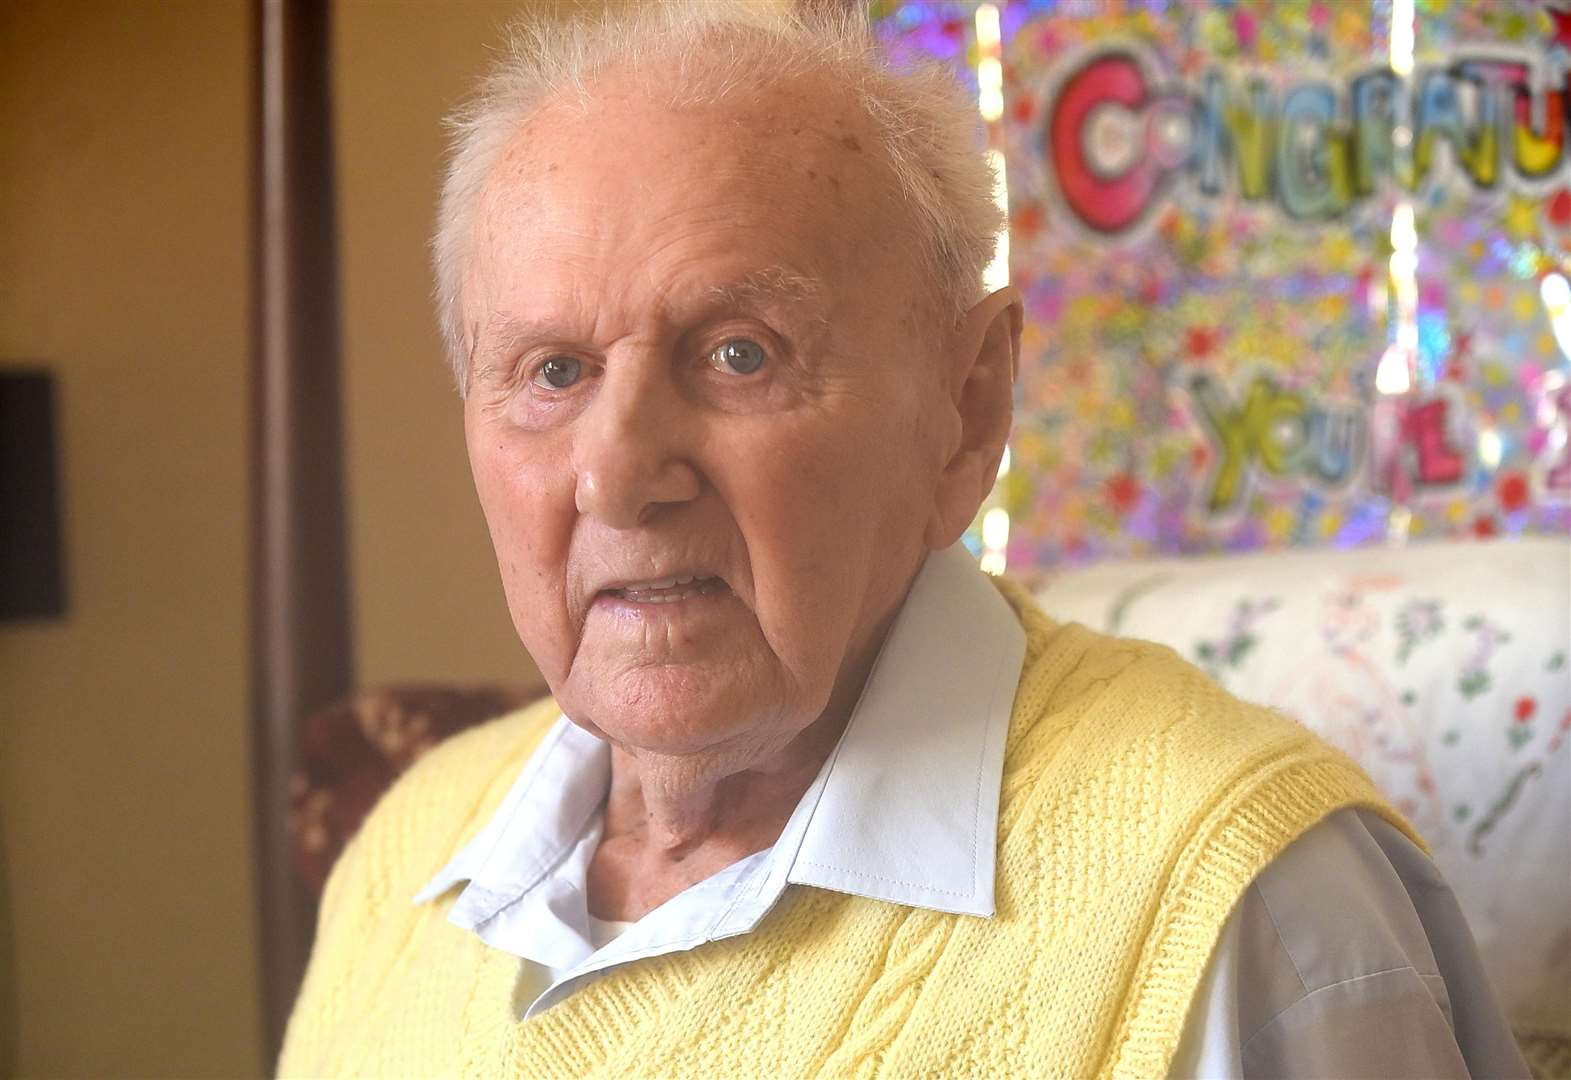 Owen Green a former prisoner of war from Wisbech has celebrated his 100th birthday